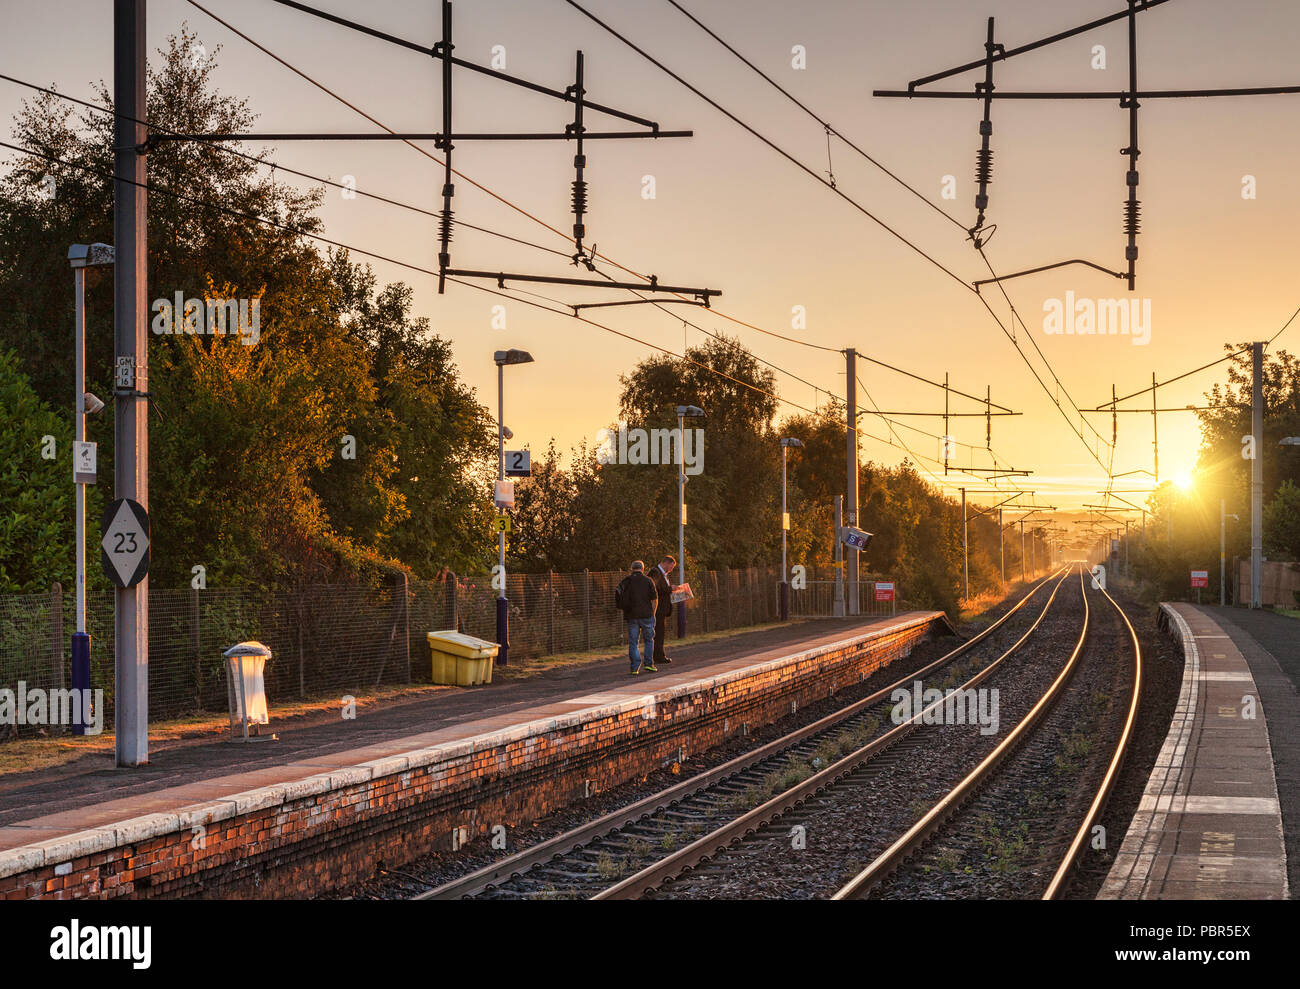 Waiting on a railway platform for a train in the early morning as the sun comes up. Bellshill Station, Glasgow, Scotland. - Stock Image